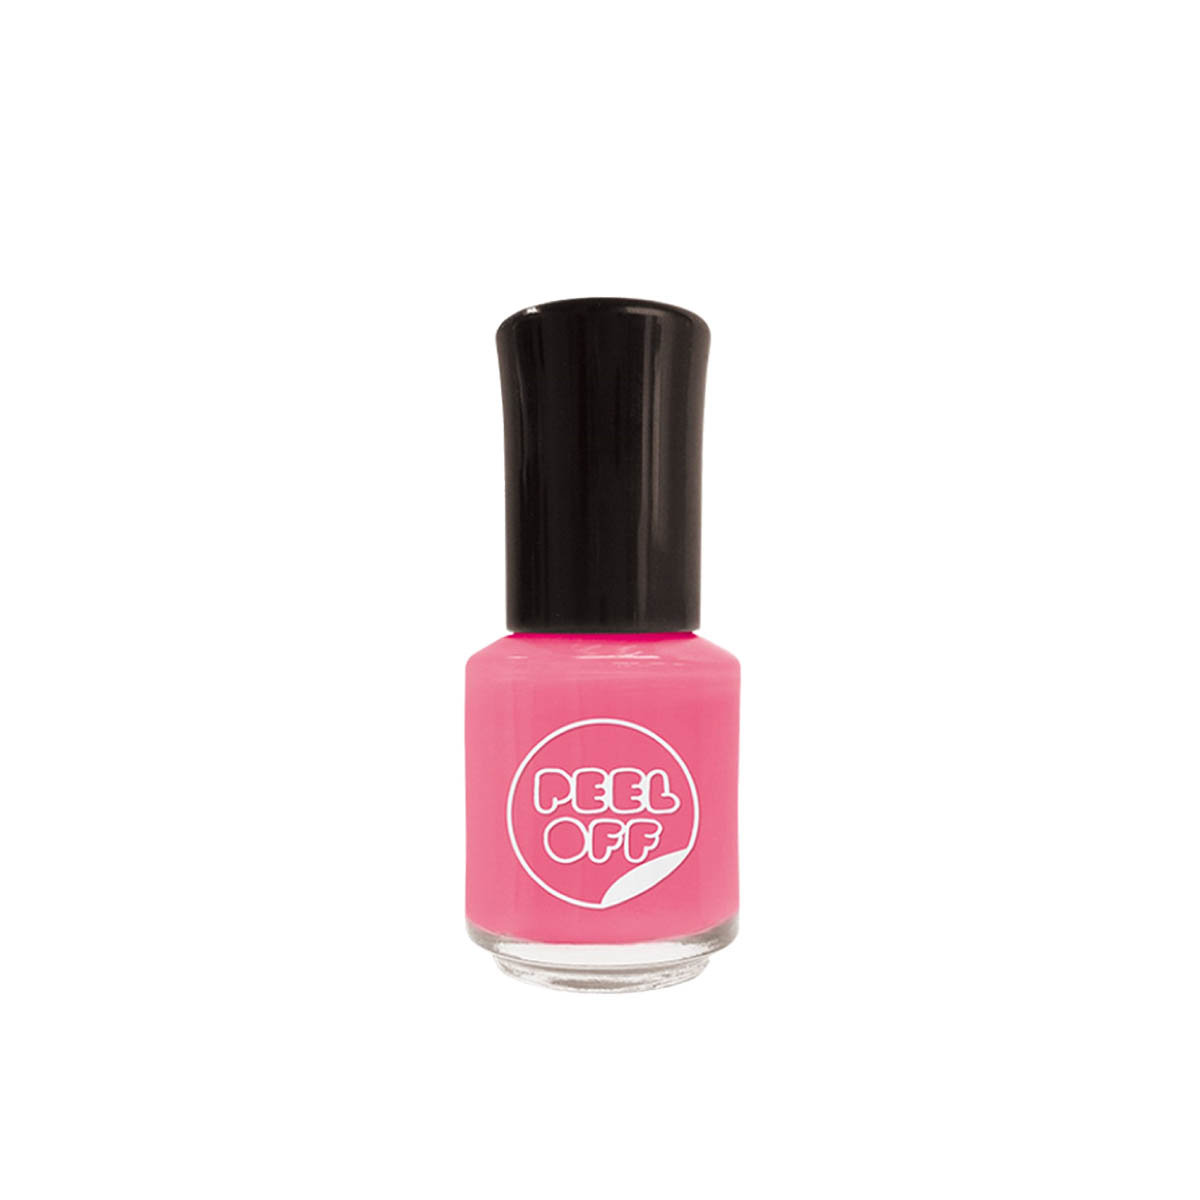 BW Peel Off Manicure (Charming Pink)